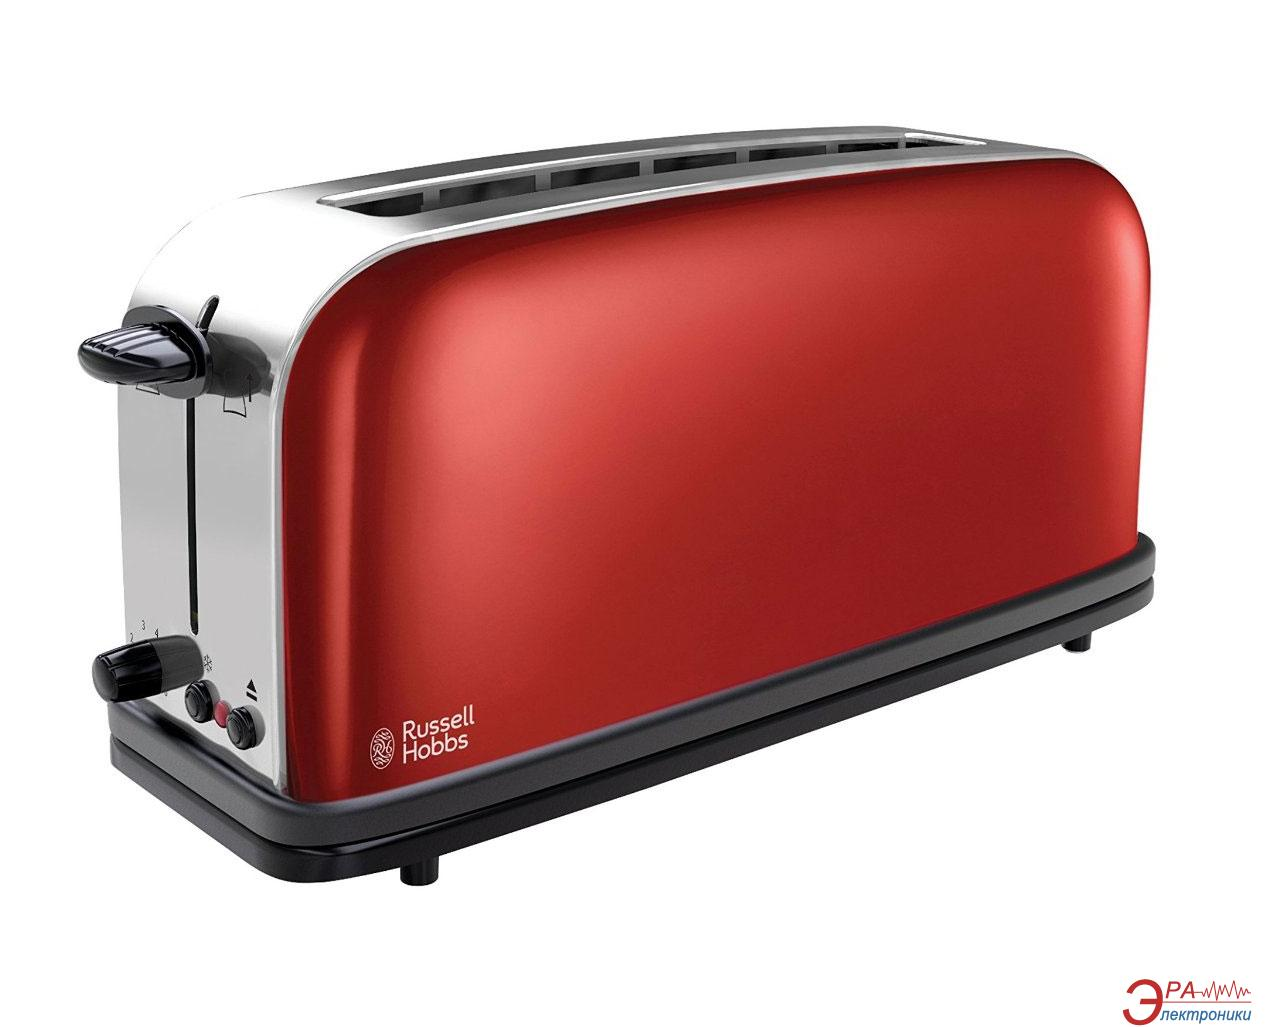 Тостер Russell Hobbs Flame Red (21391-56)